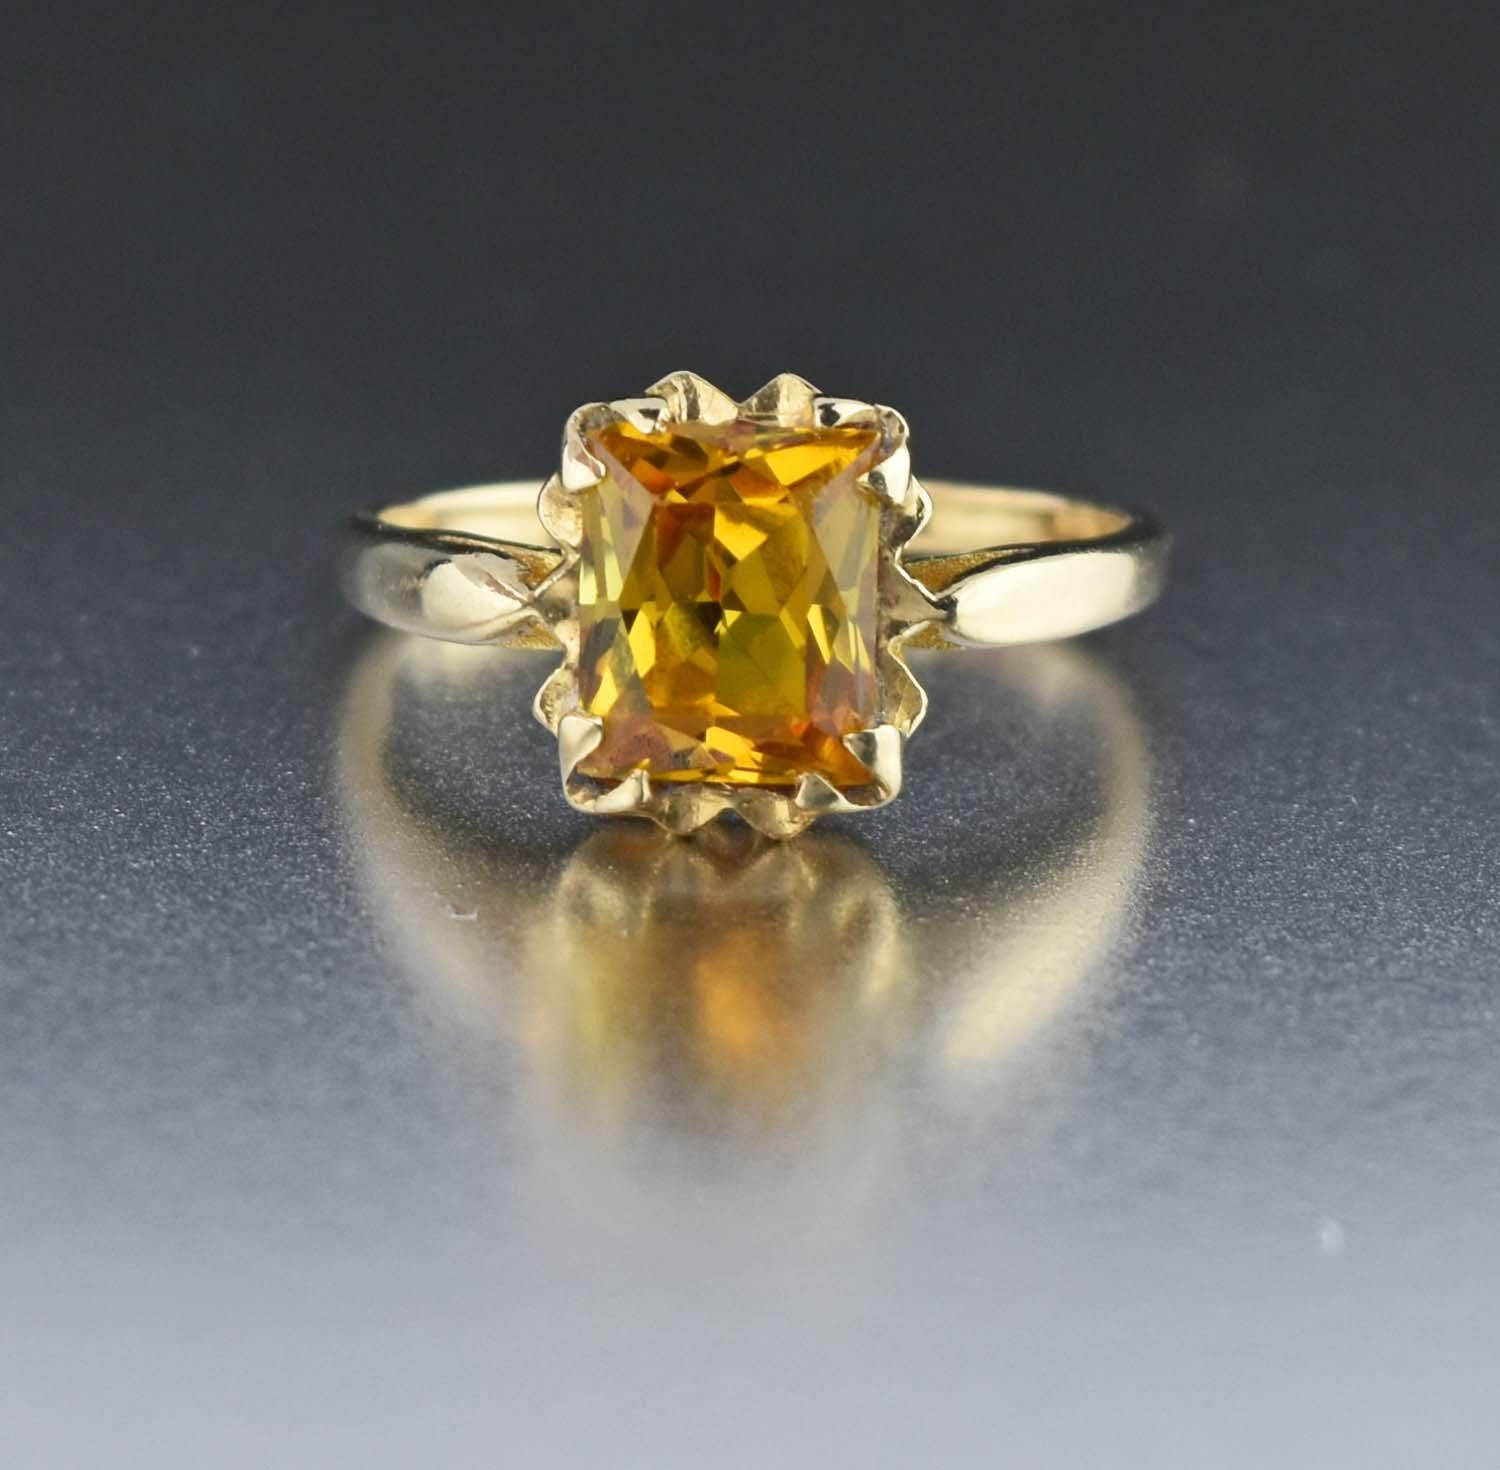 Vintage 10k Gold Yellow Citrine Ring With Images Yellow Citrine Ring Gold Citrine Engagement Ring Citrine Ring